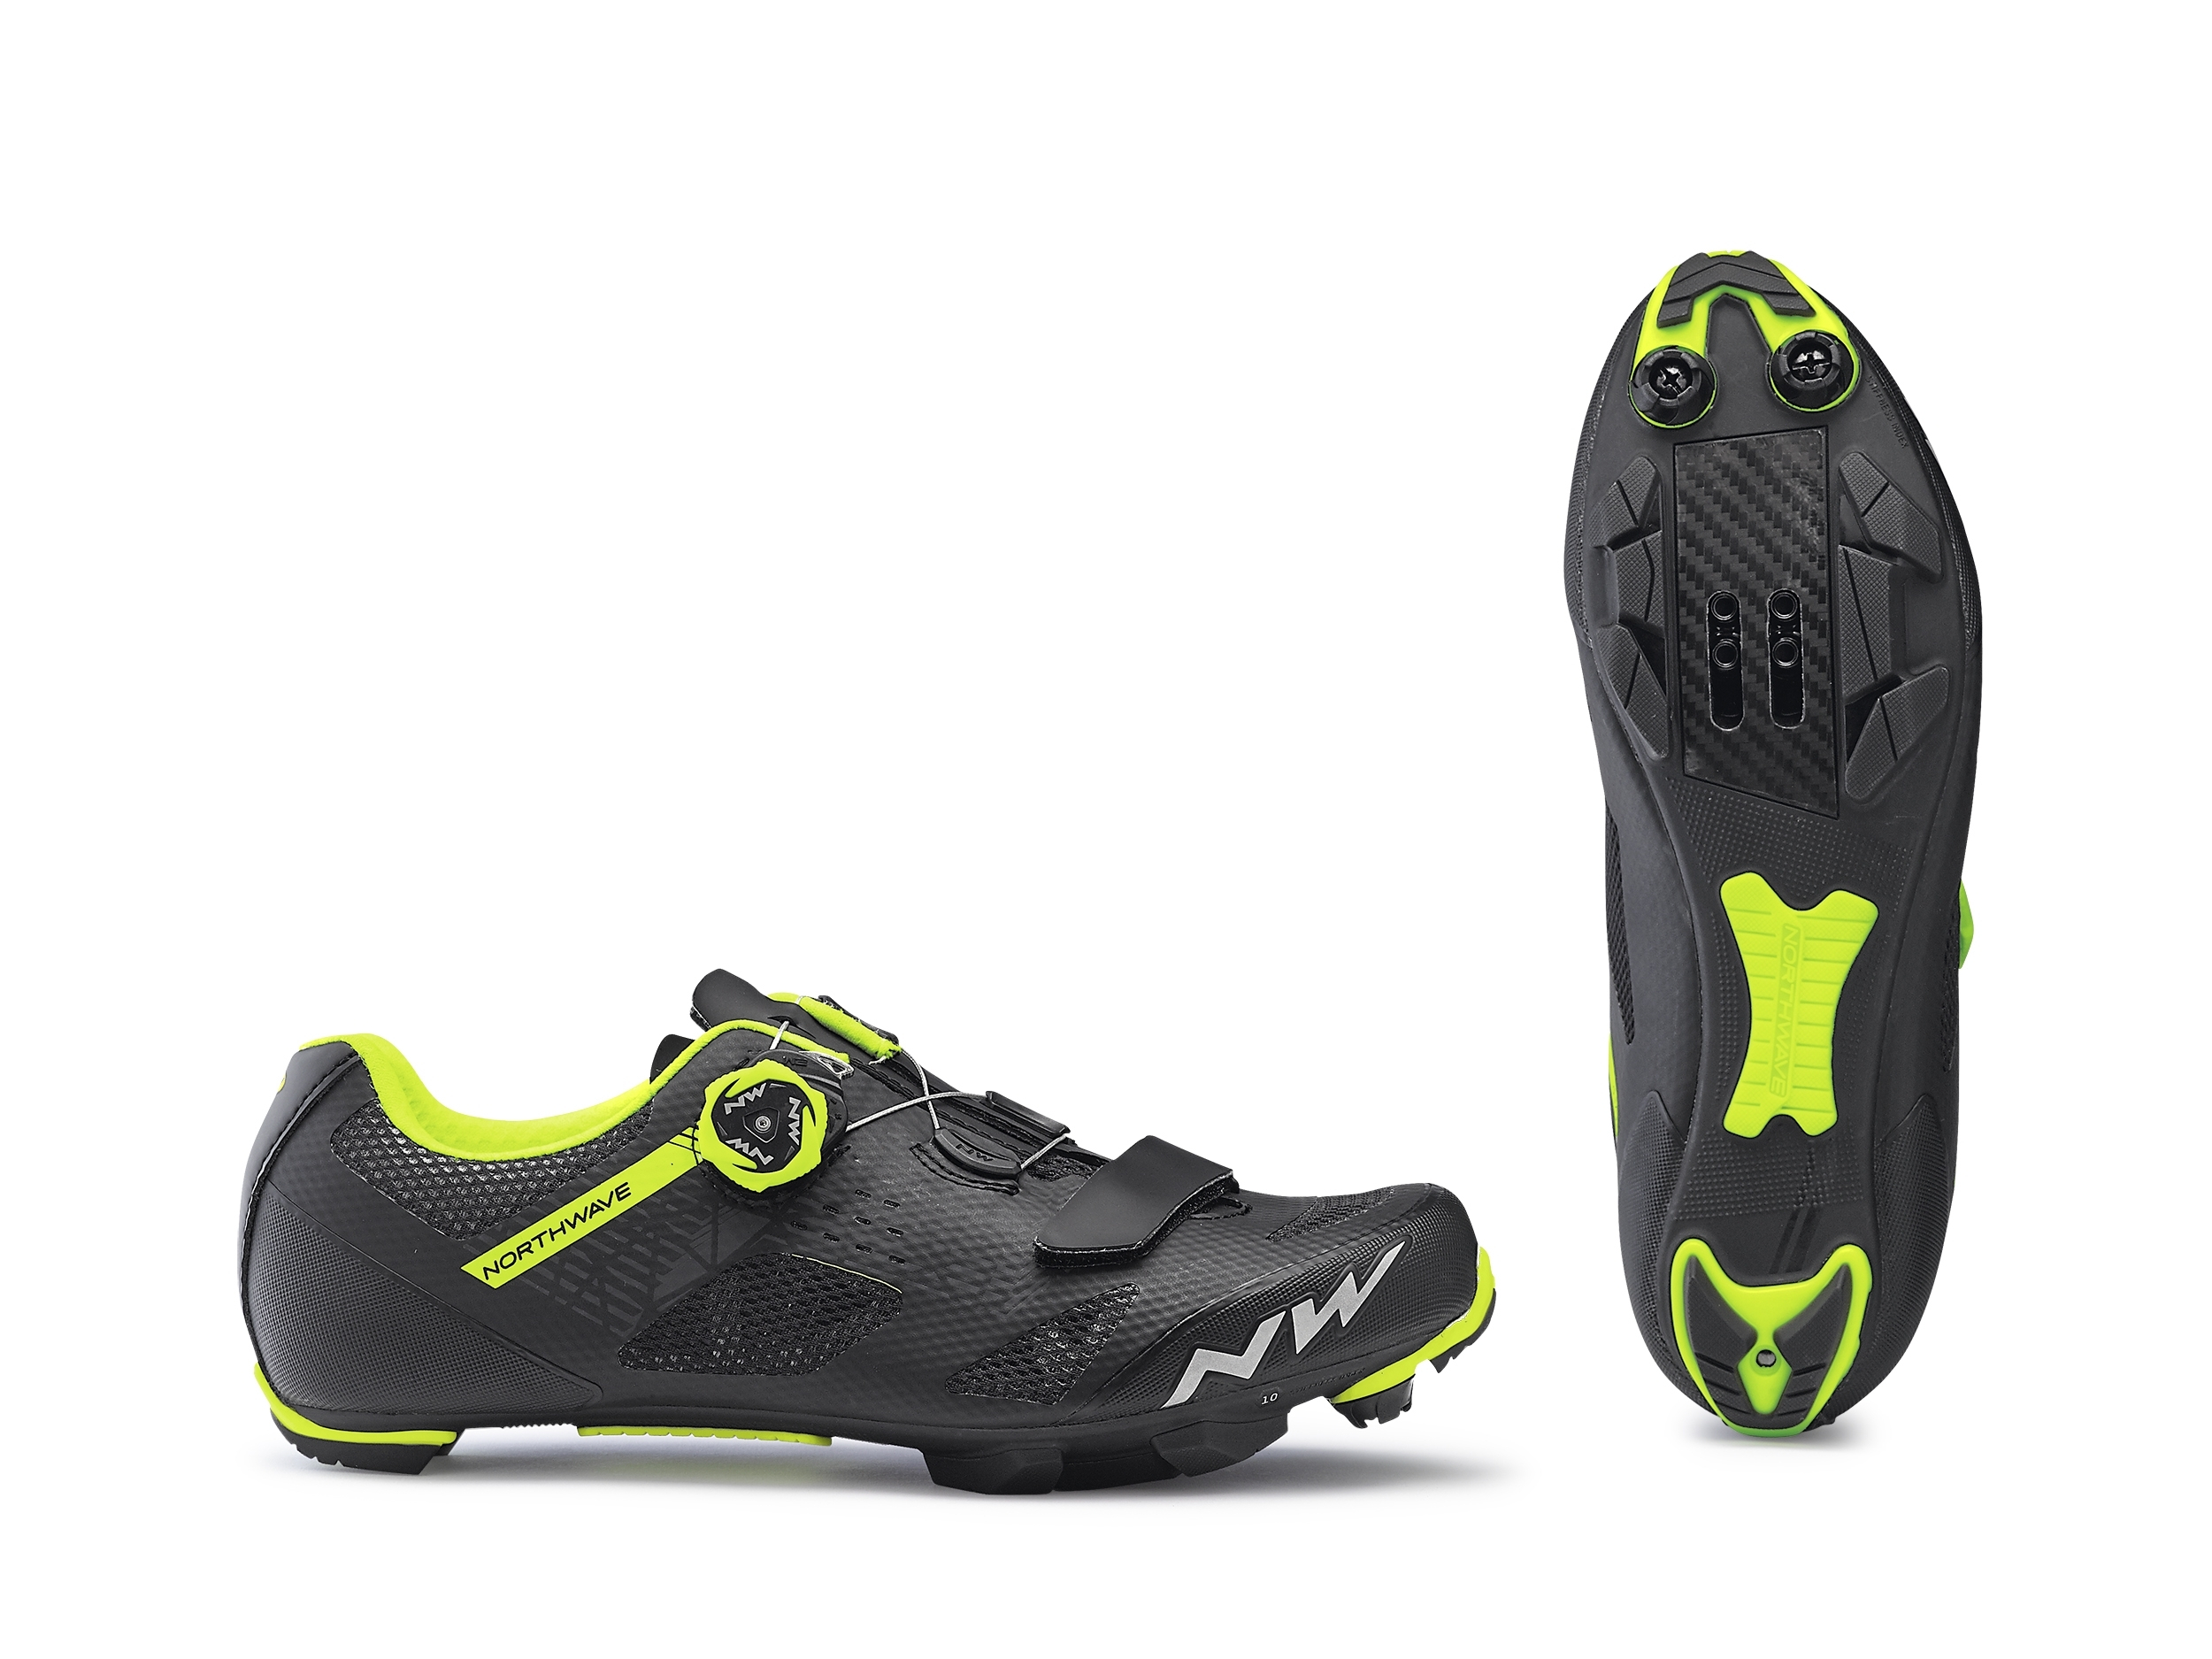 Best price Northwave Bike shoes Male Razer | Italy2us.com